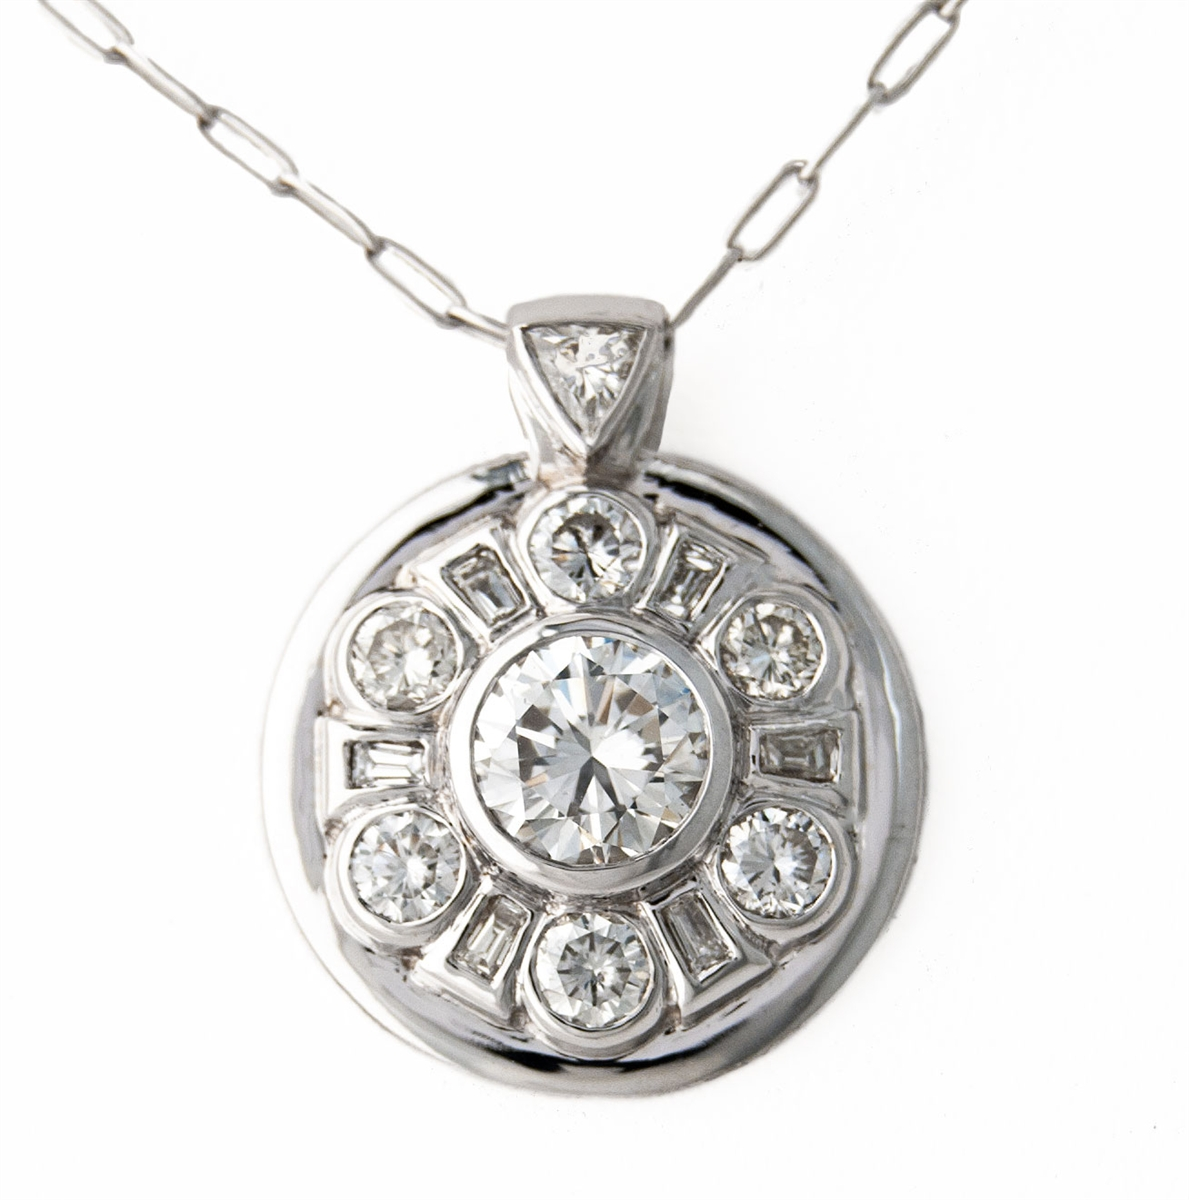 pendant classic deco roberto gallery gold baguette product necklace diamond lyst coin jewelry normal white